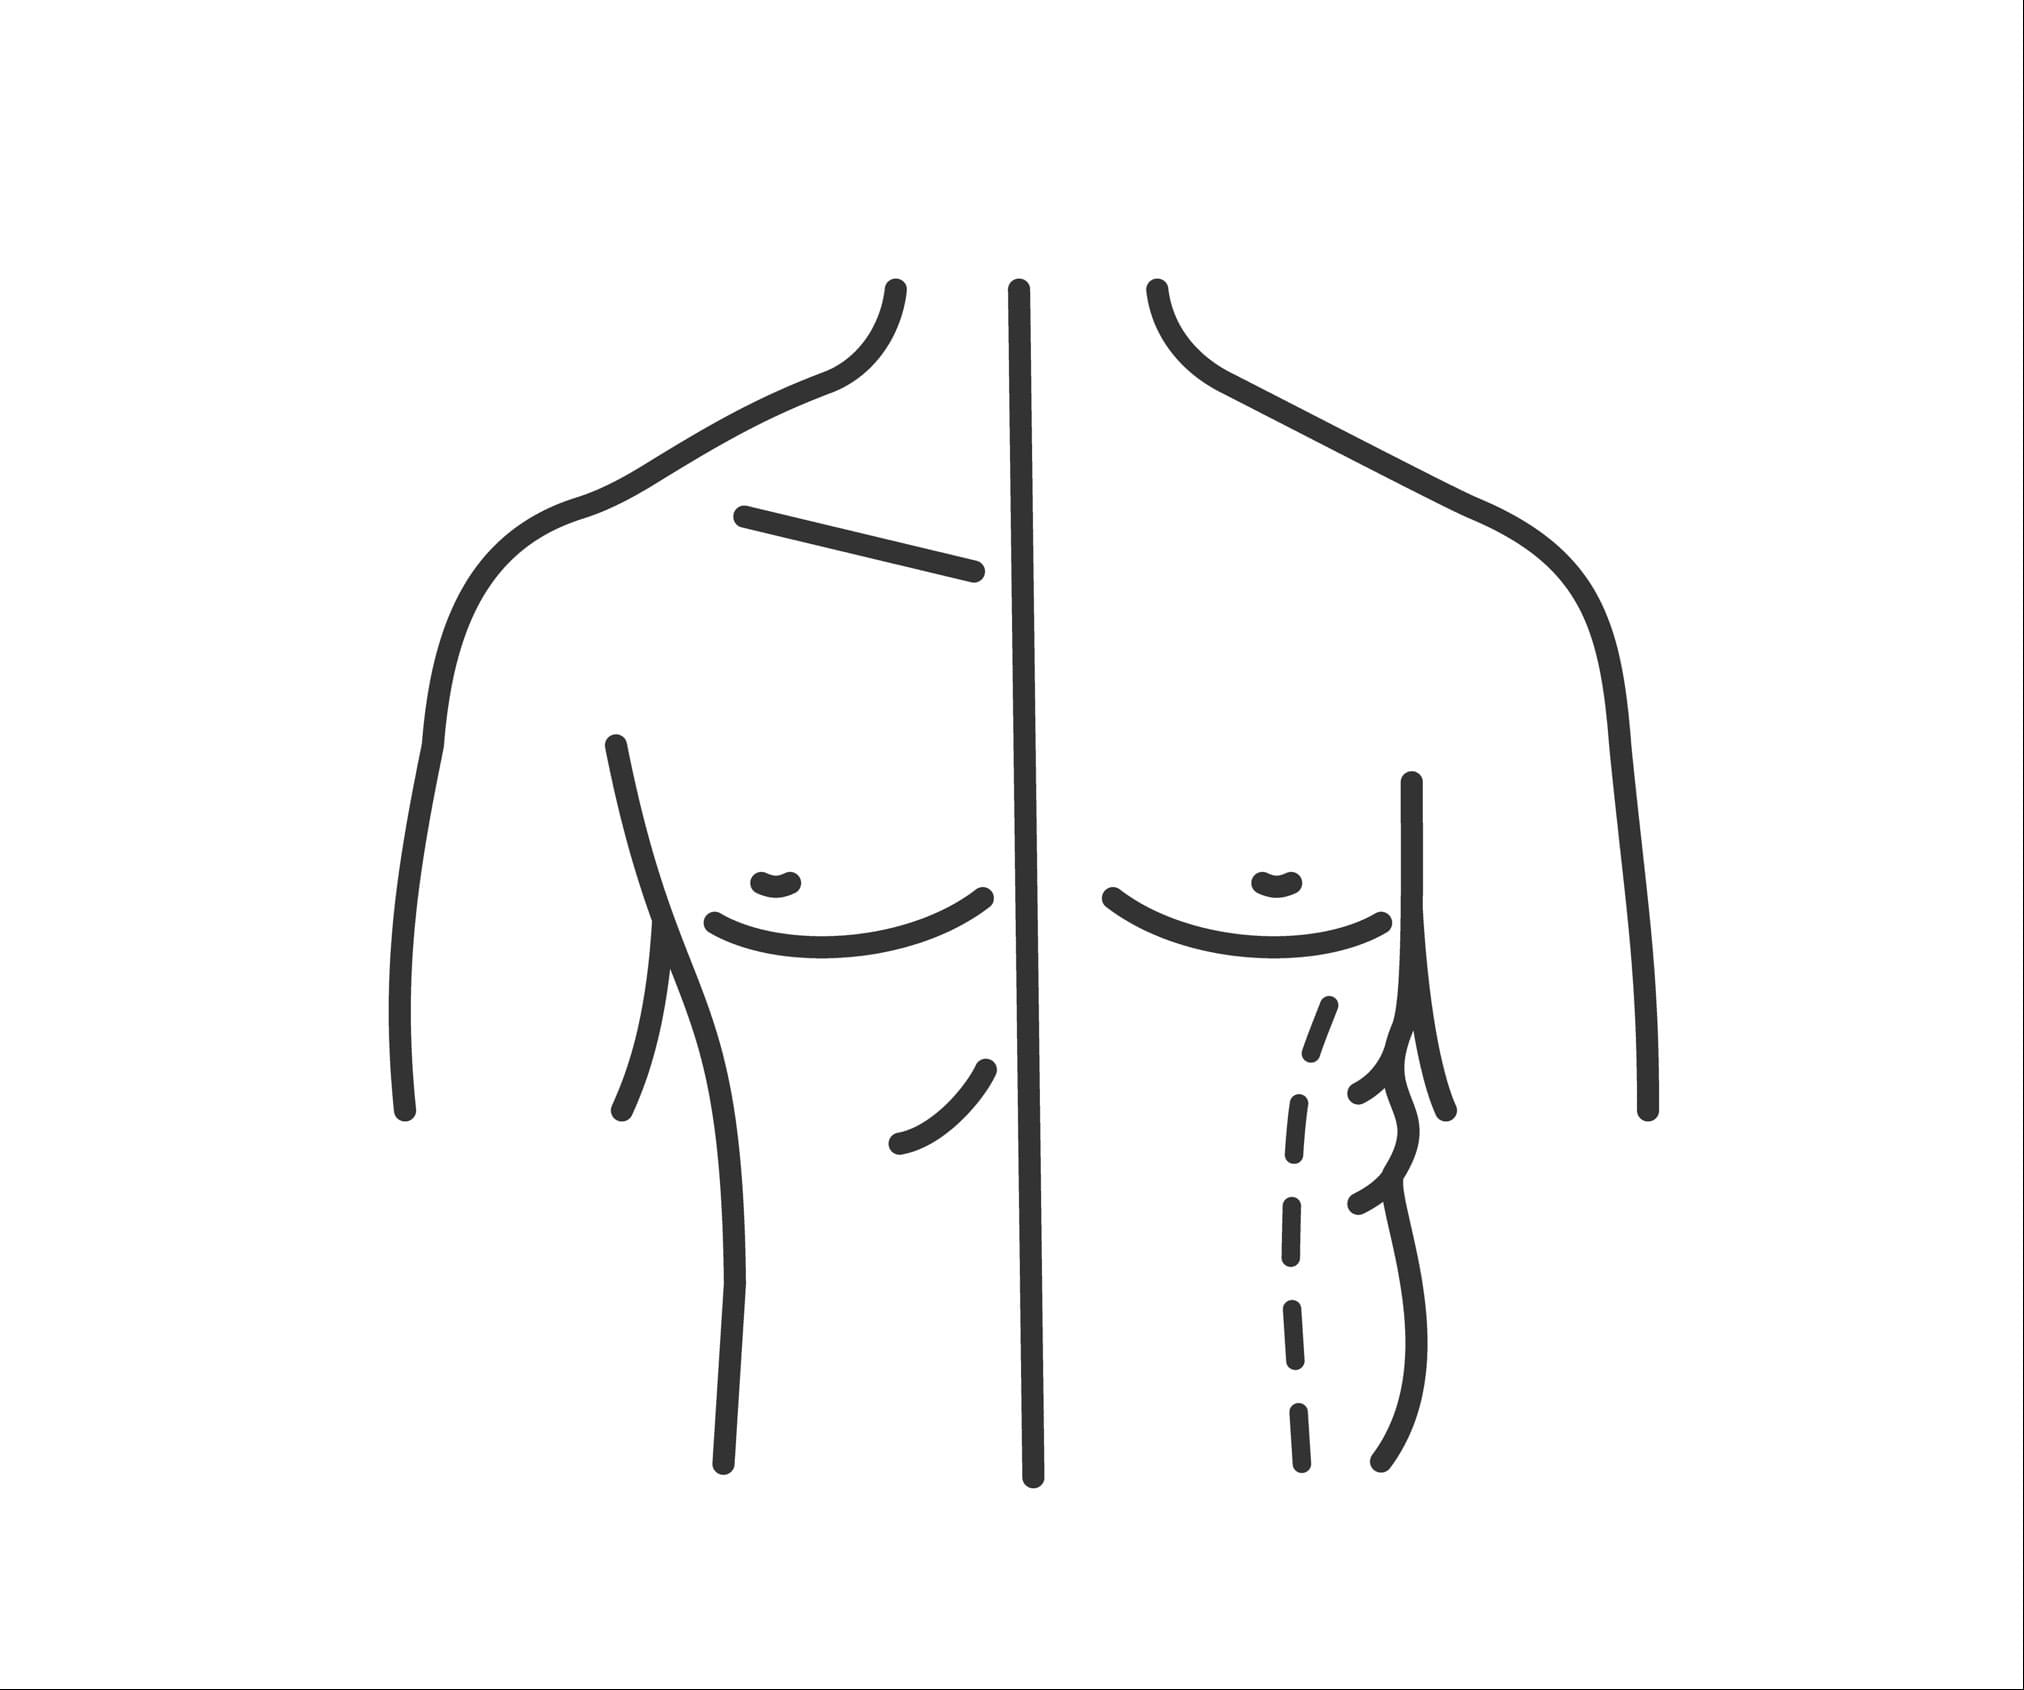 CoolSculpting Prices Image